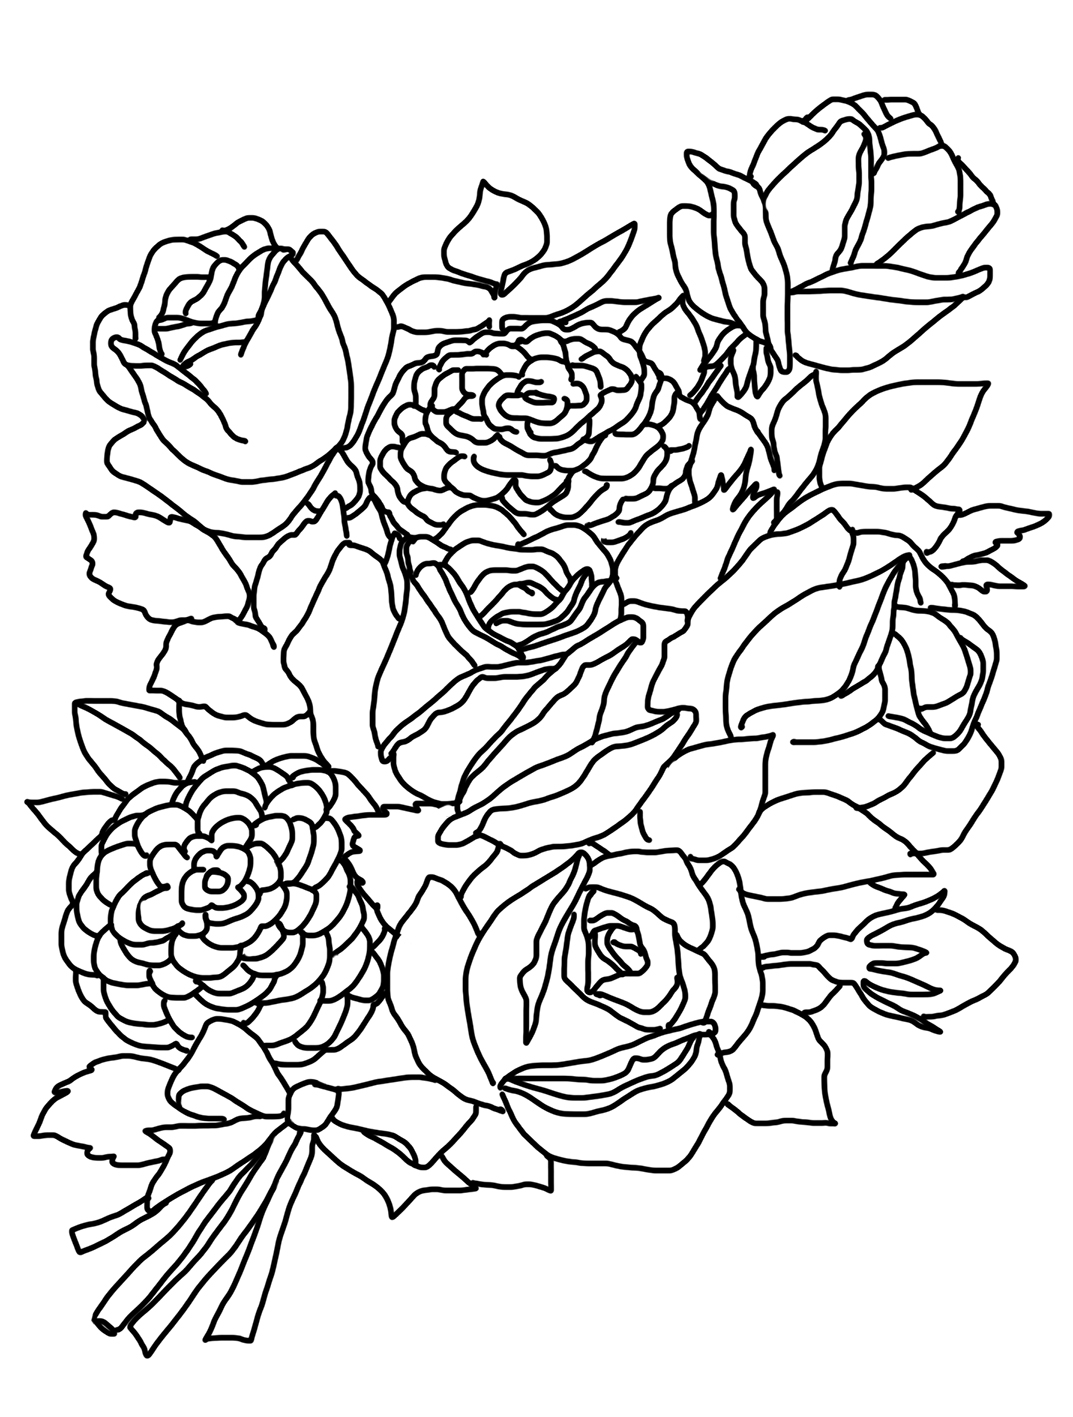 colouring page of flowers free printable flower coloring pages for kids best page flowers colouring of